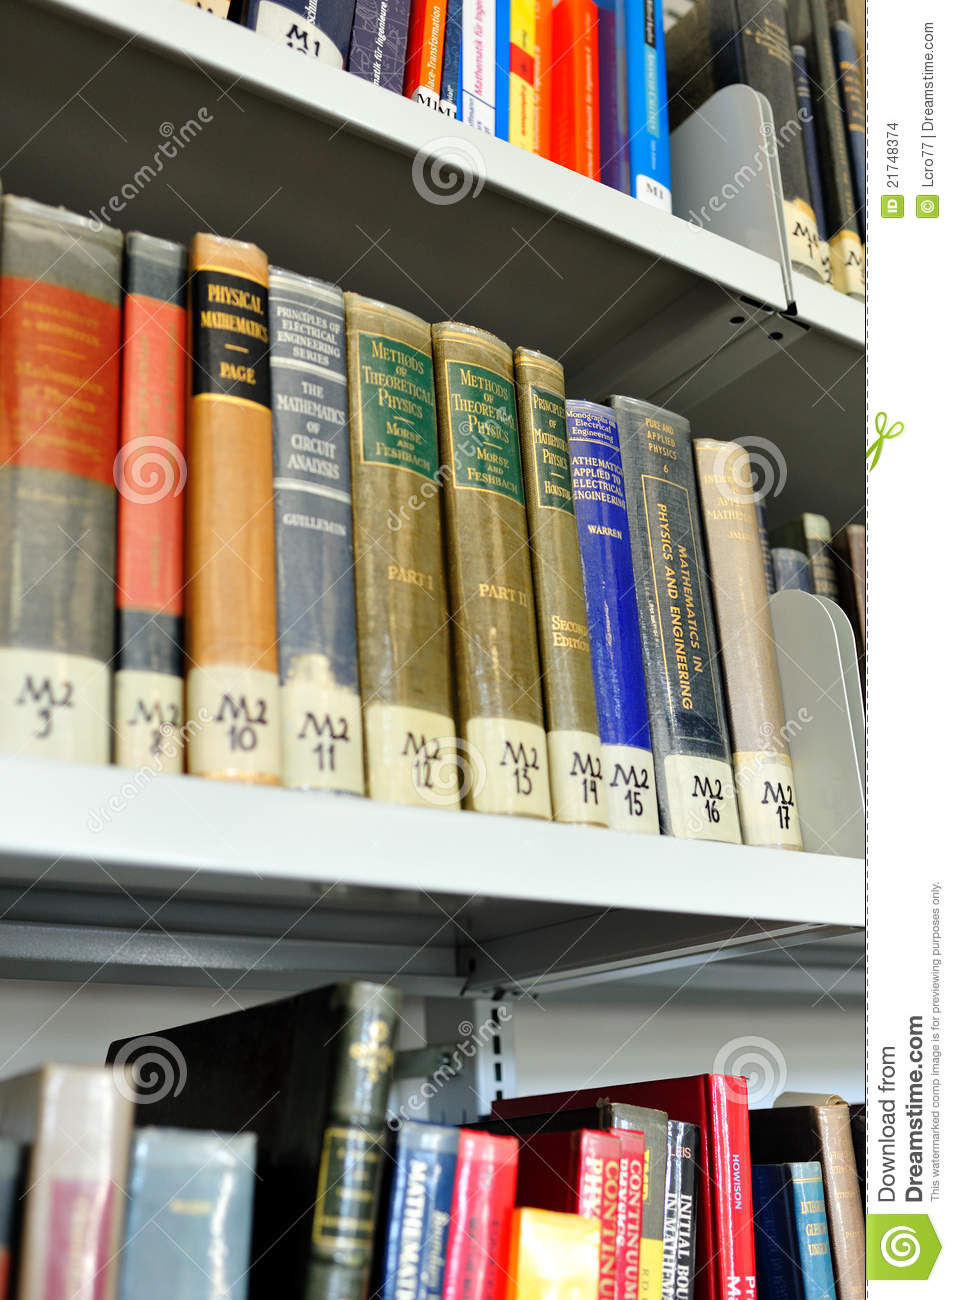 Physics books of knowledge editorial stock image  Image of